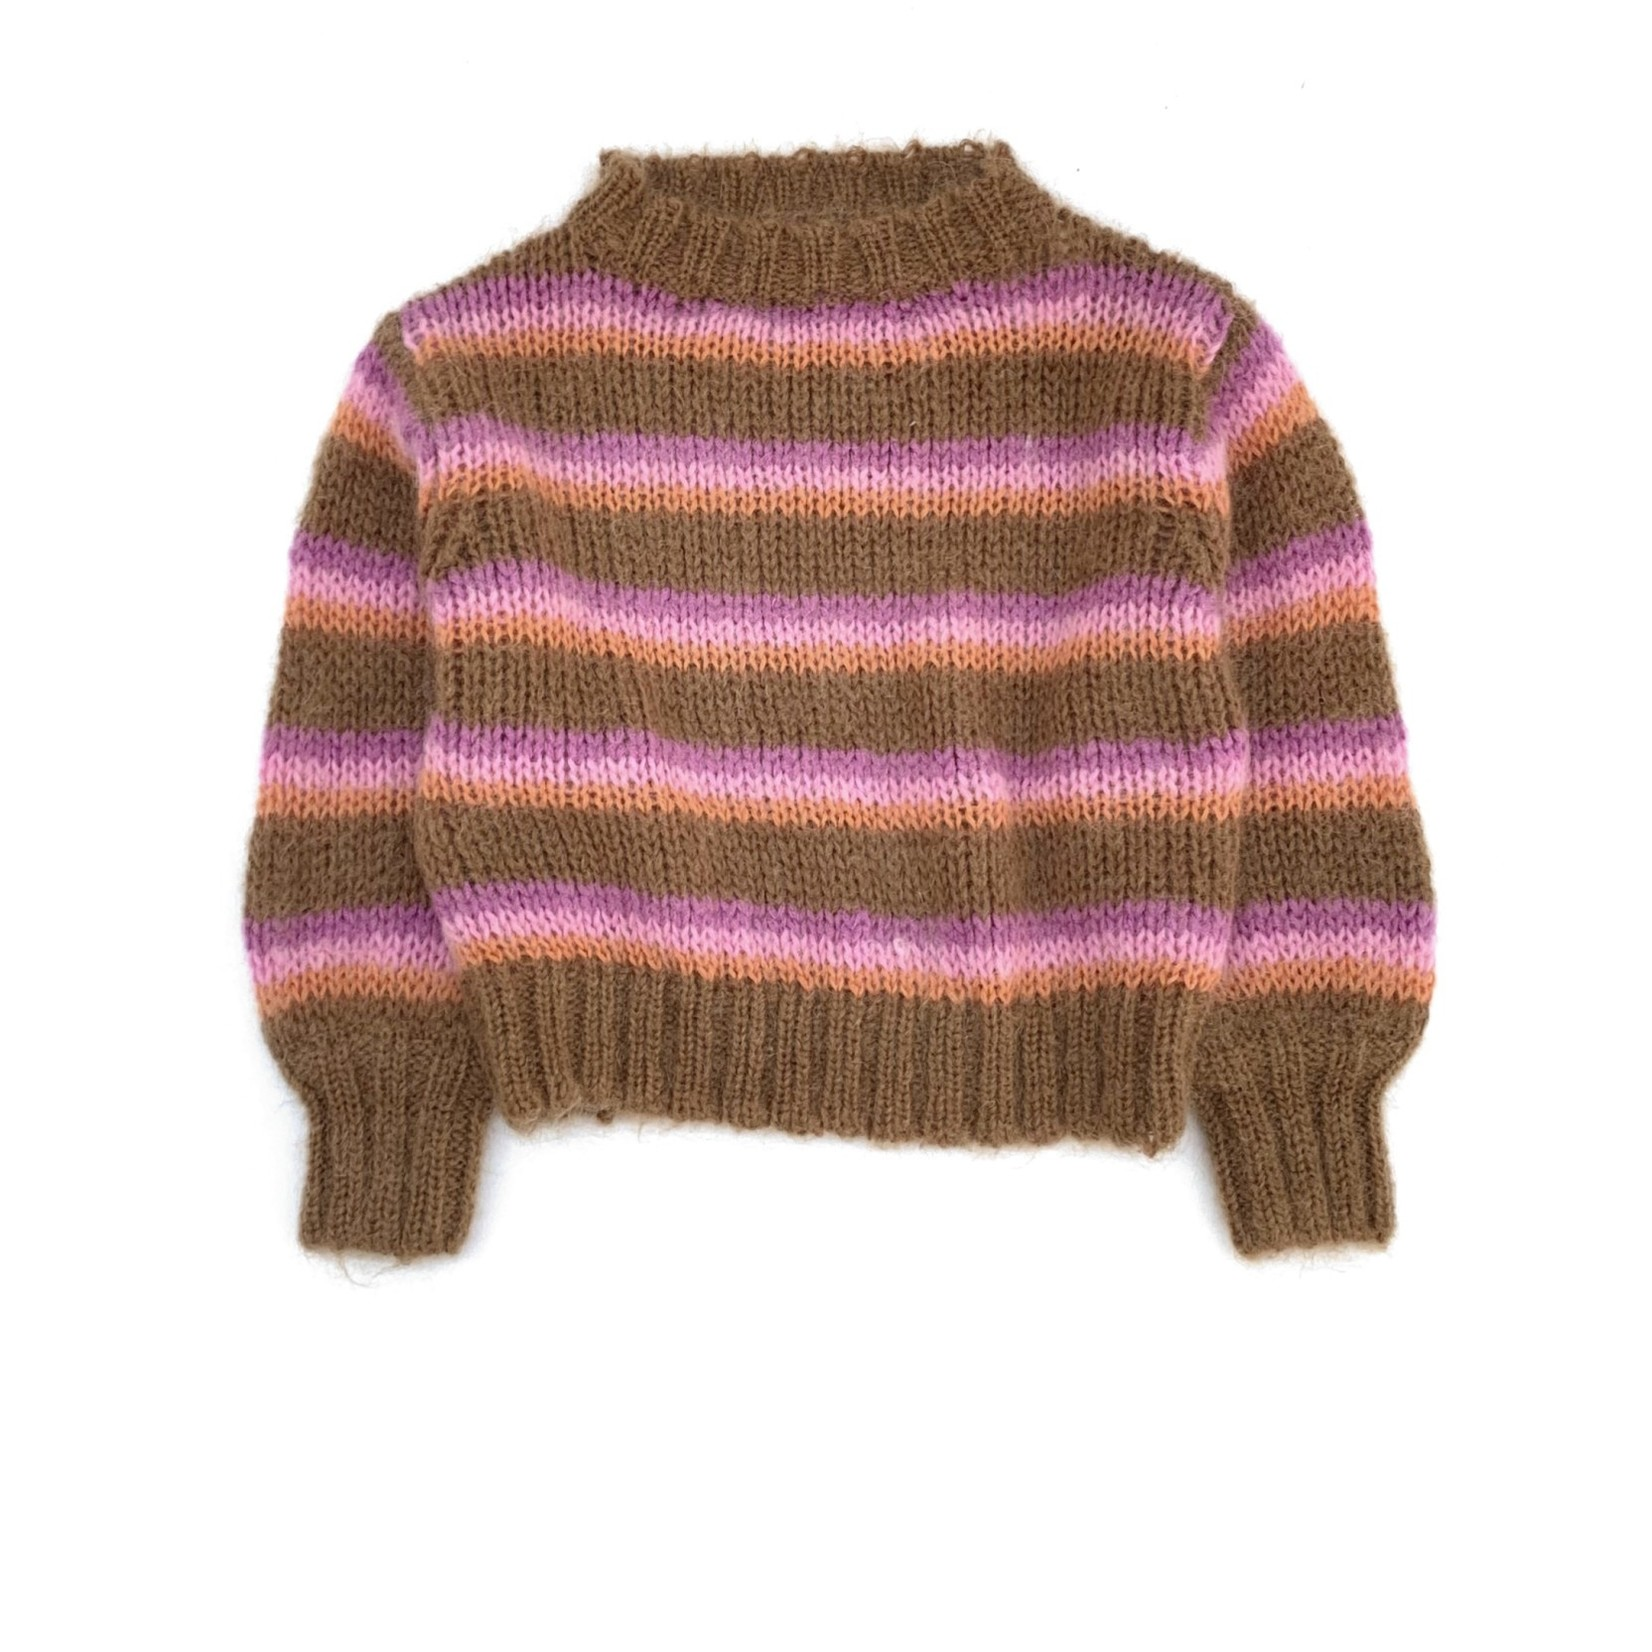 LONG LIVE THE QUEEN Long live the queen striped sweater